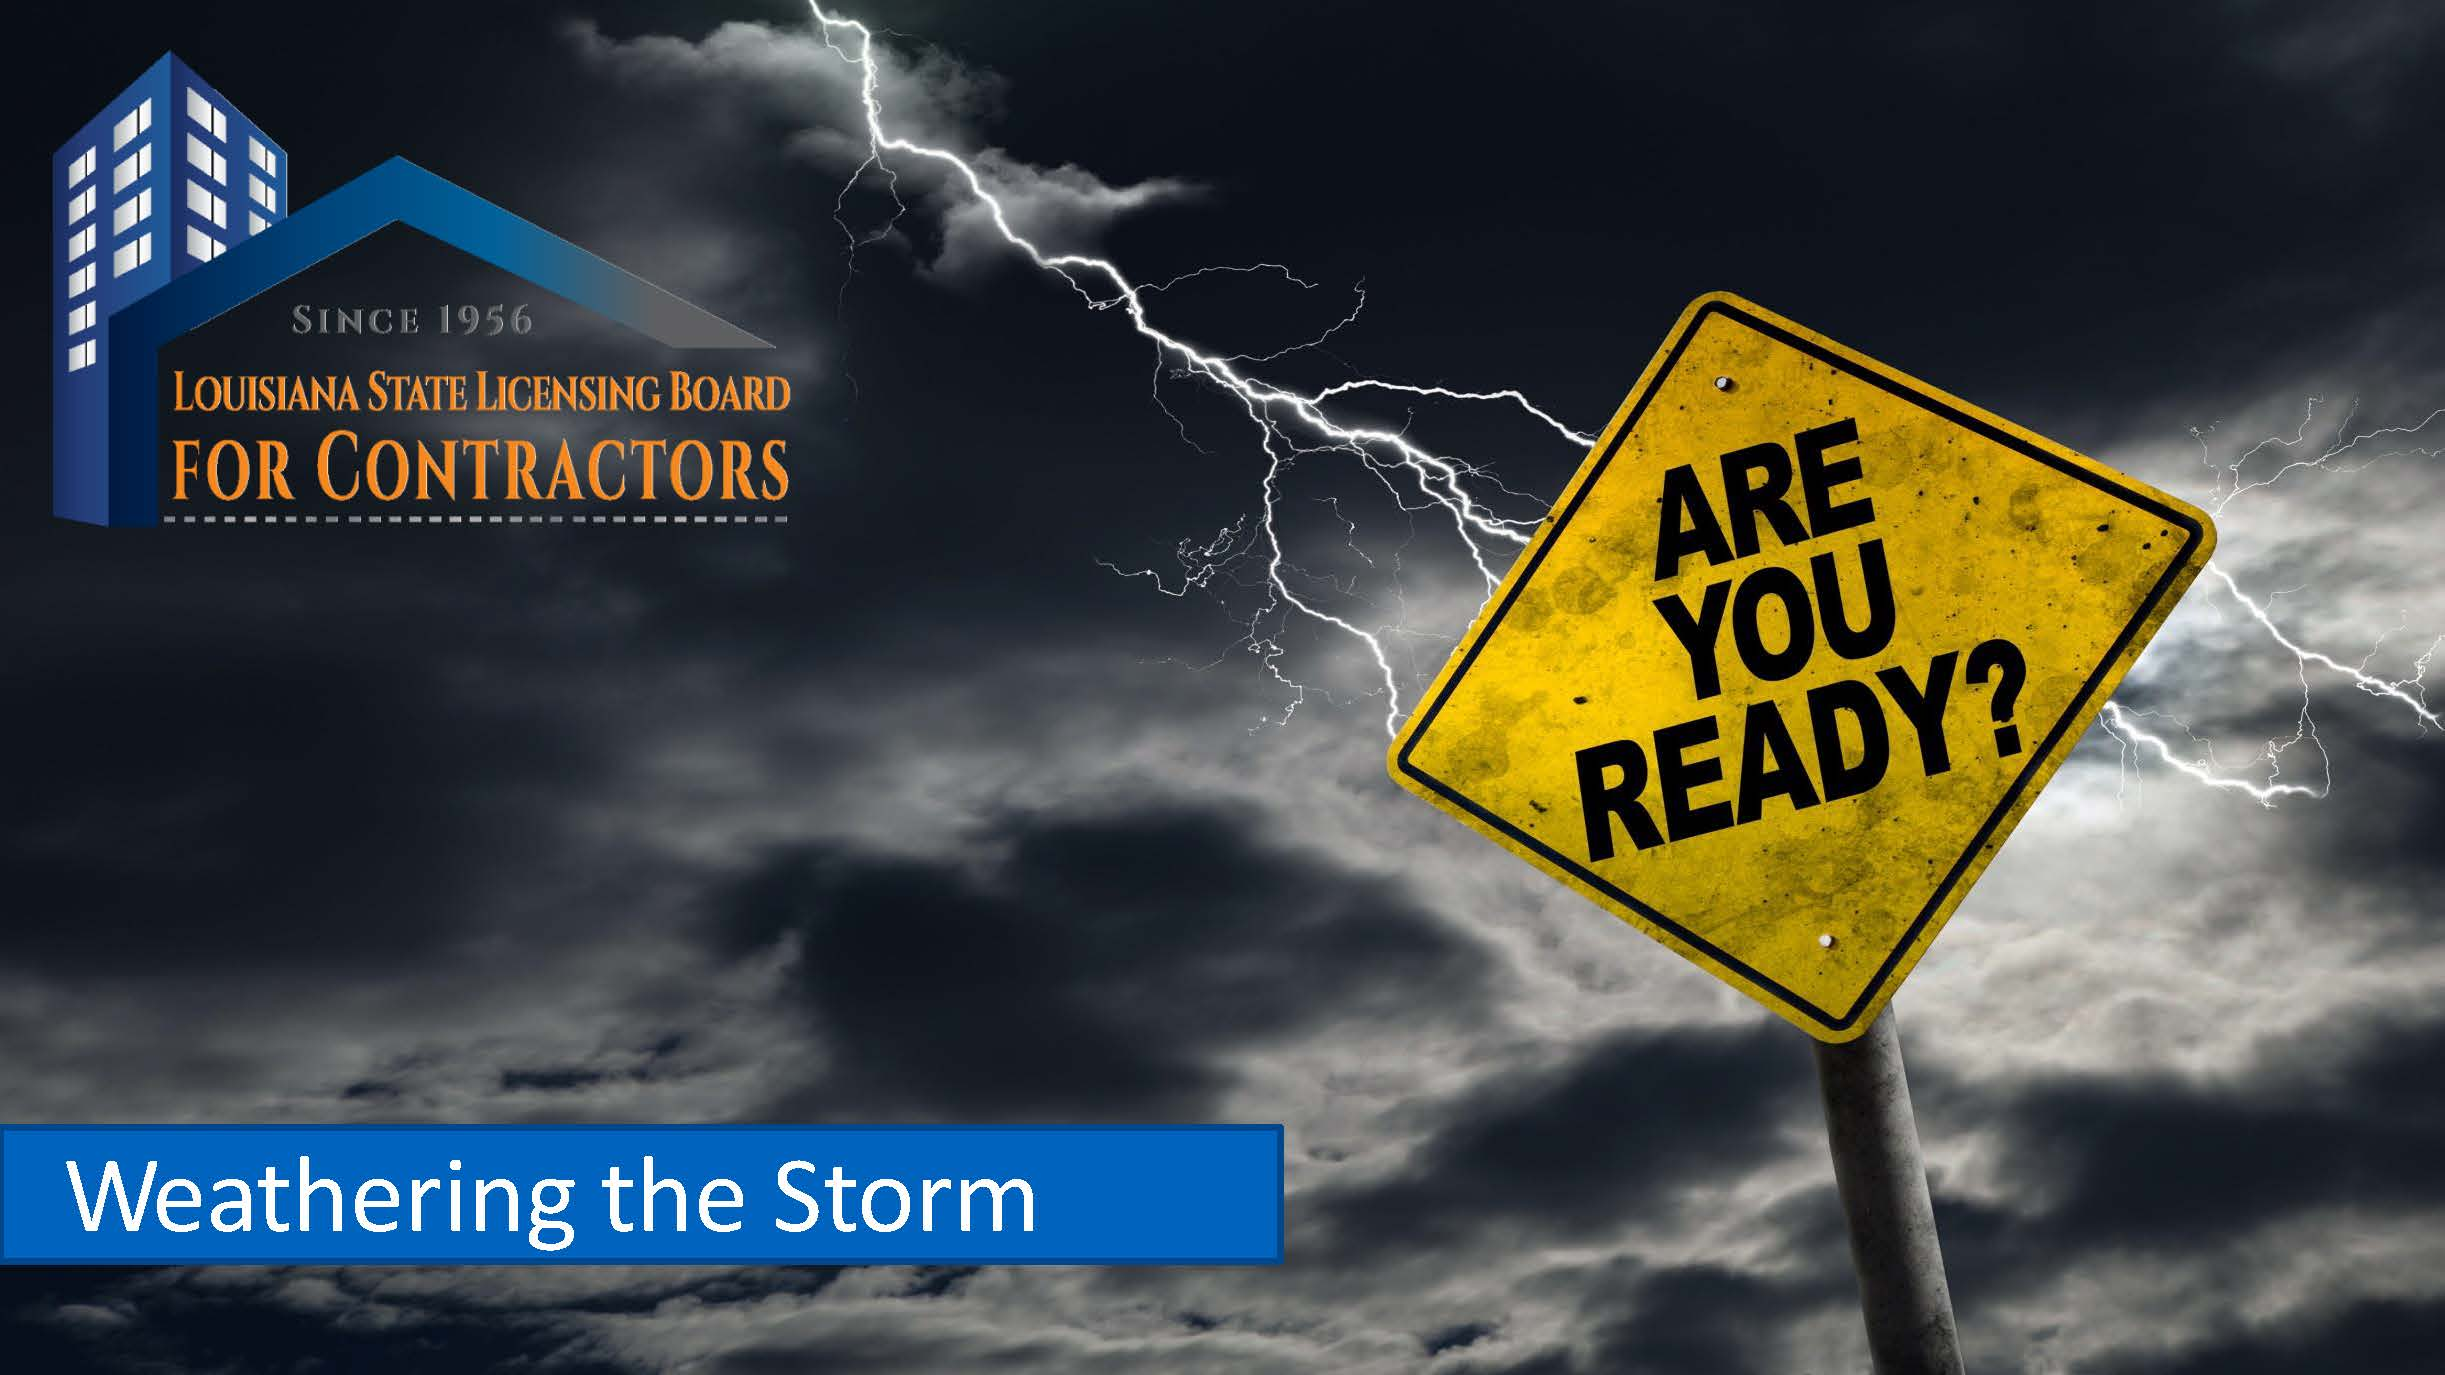 Weathering the Storm 2021